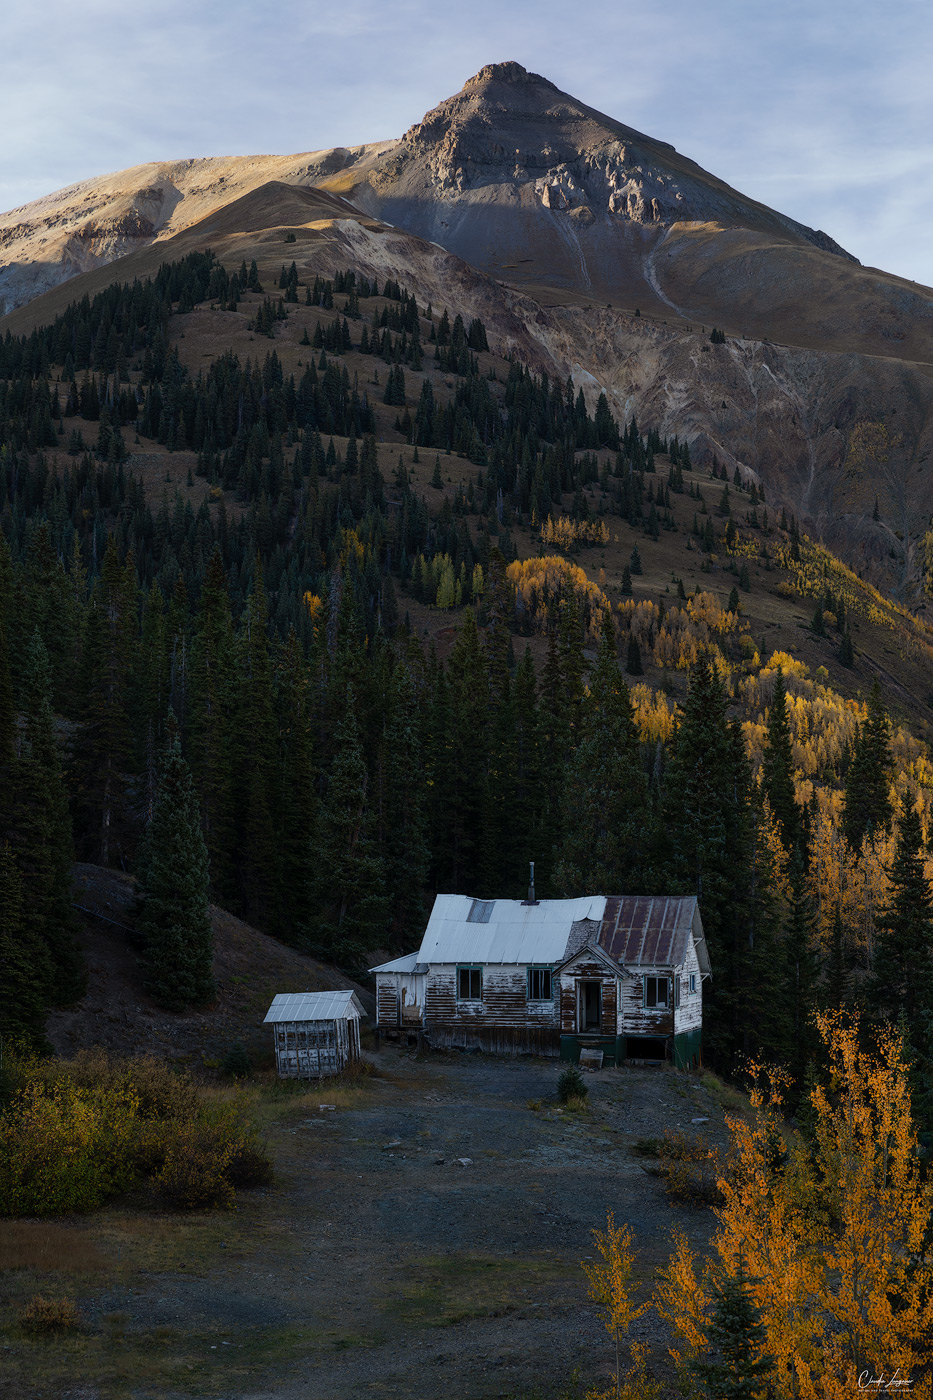 View of abandonned houses near Ridgway on the Million Dollar Highway.